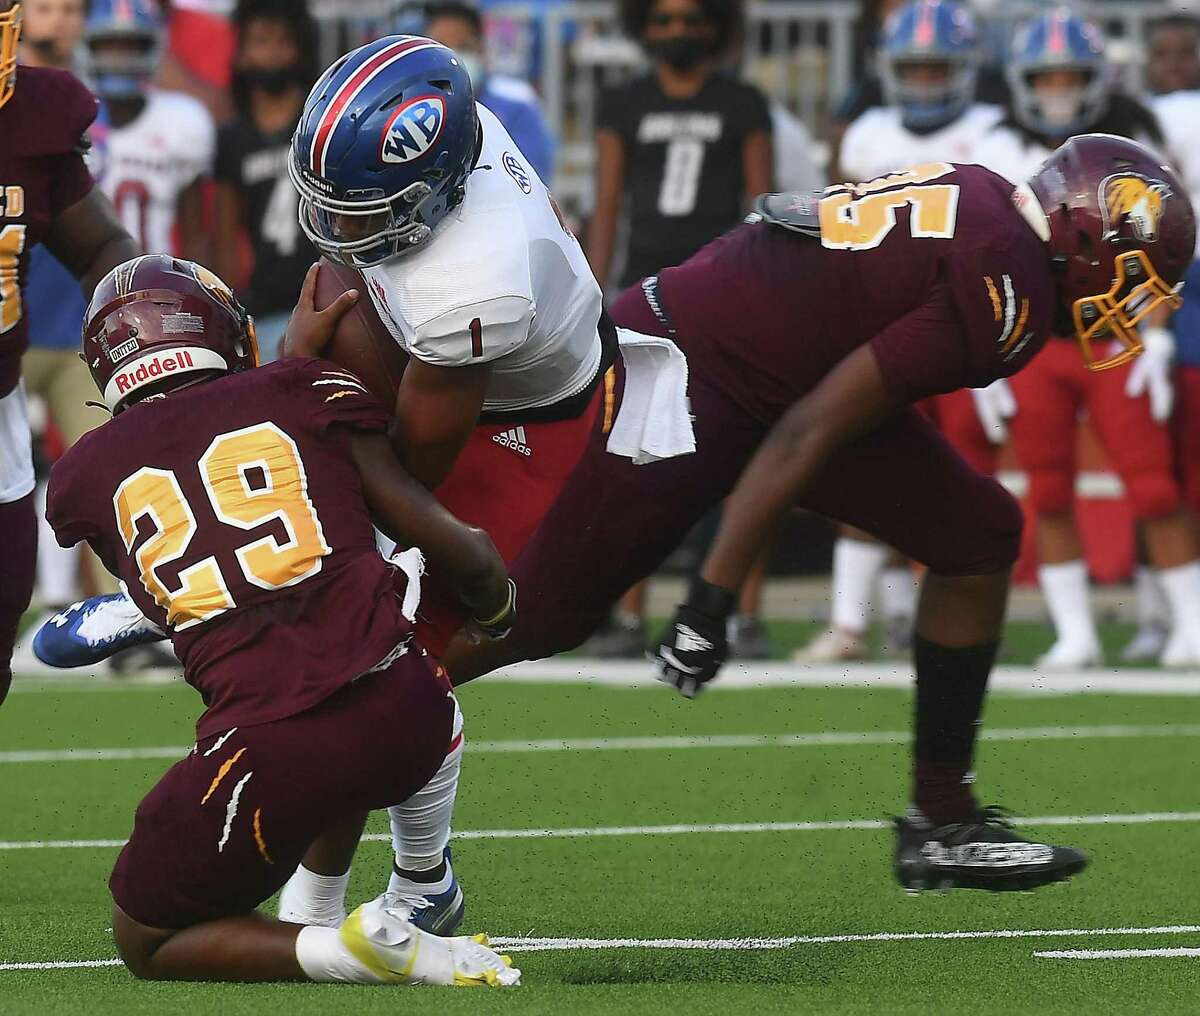 Beaumont United's Decarlos Andersonn tackles West Brook's Bryce Anderson during the season opening Alumni Bowl game Friday at BISD Memorial Stadium. Photo made Friday, August 27, 2021 Kim Brent/The Enterprise